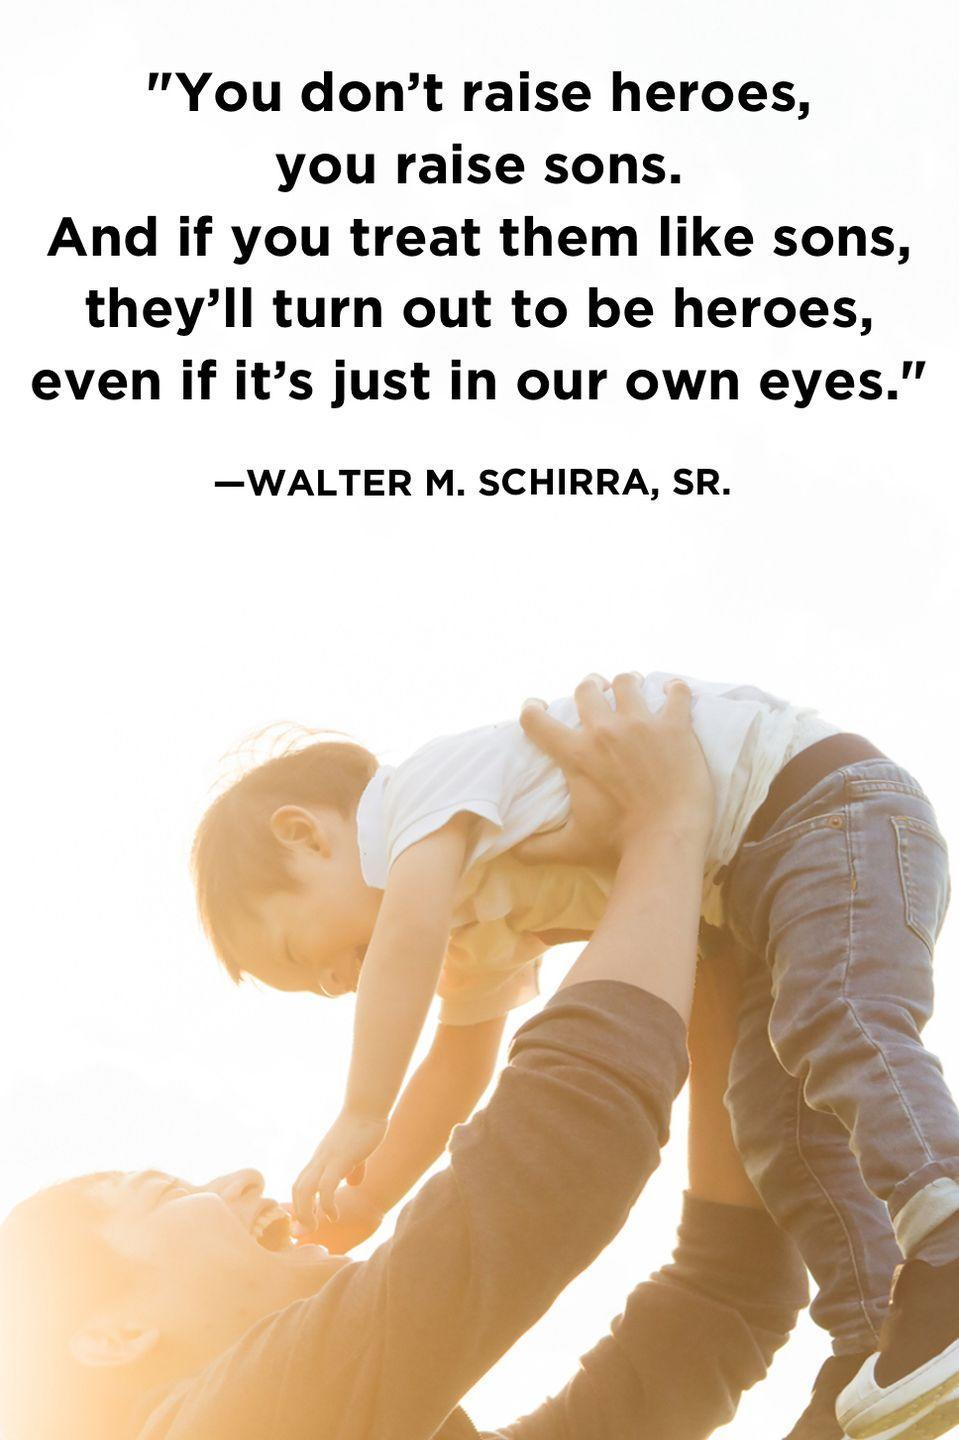 """<p>""""You don't raise heroes, you raise sons. And if you treat them like sons, they'll turn out to be heroes, even if it's just in our own eyes.""""</p>"""